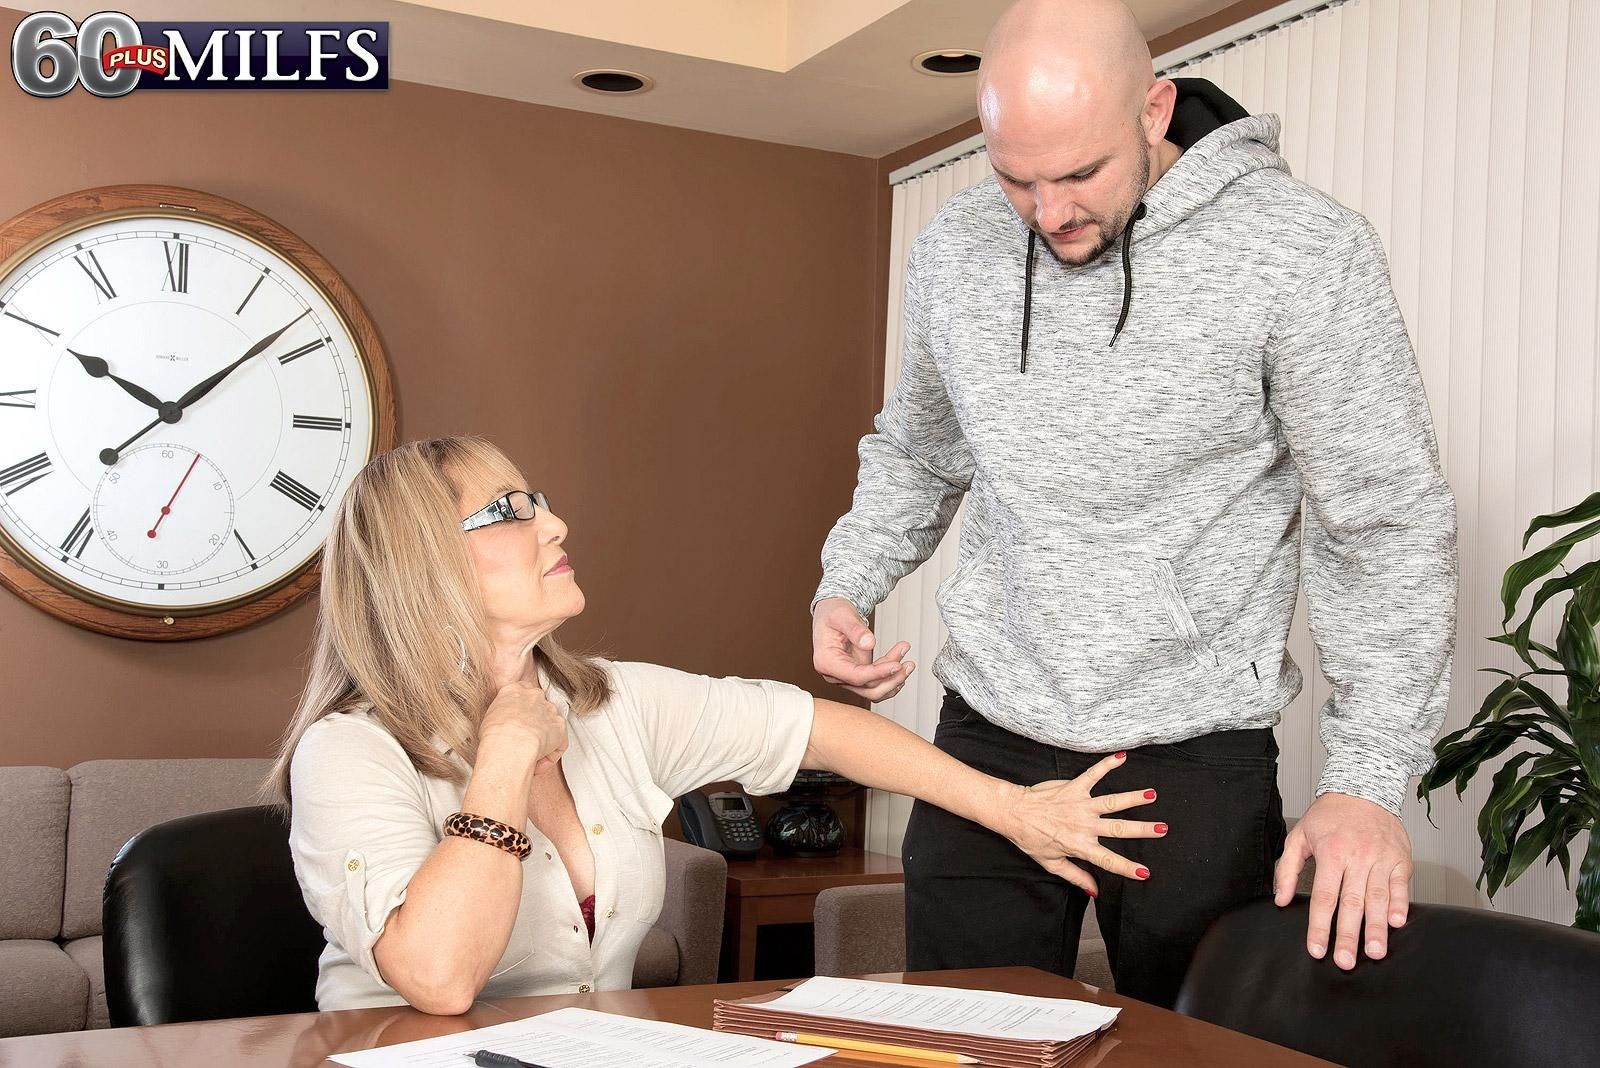 Hot 60+ woman Luna Azul has her blouse loosened by younger man in her office